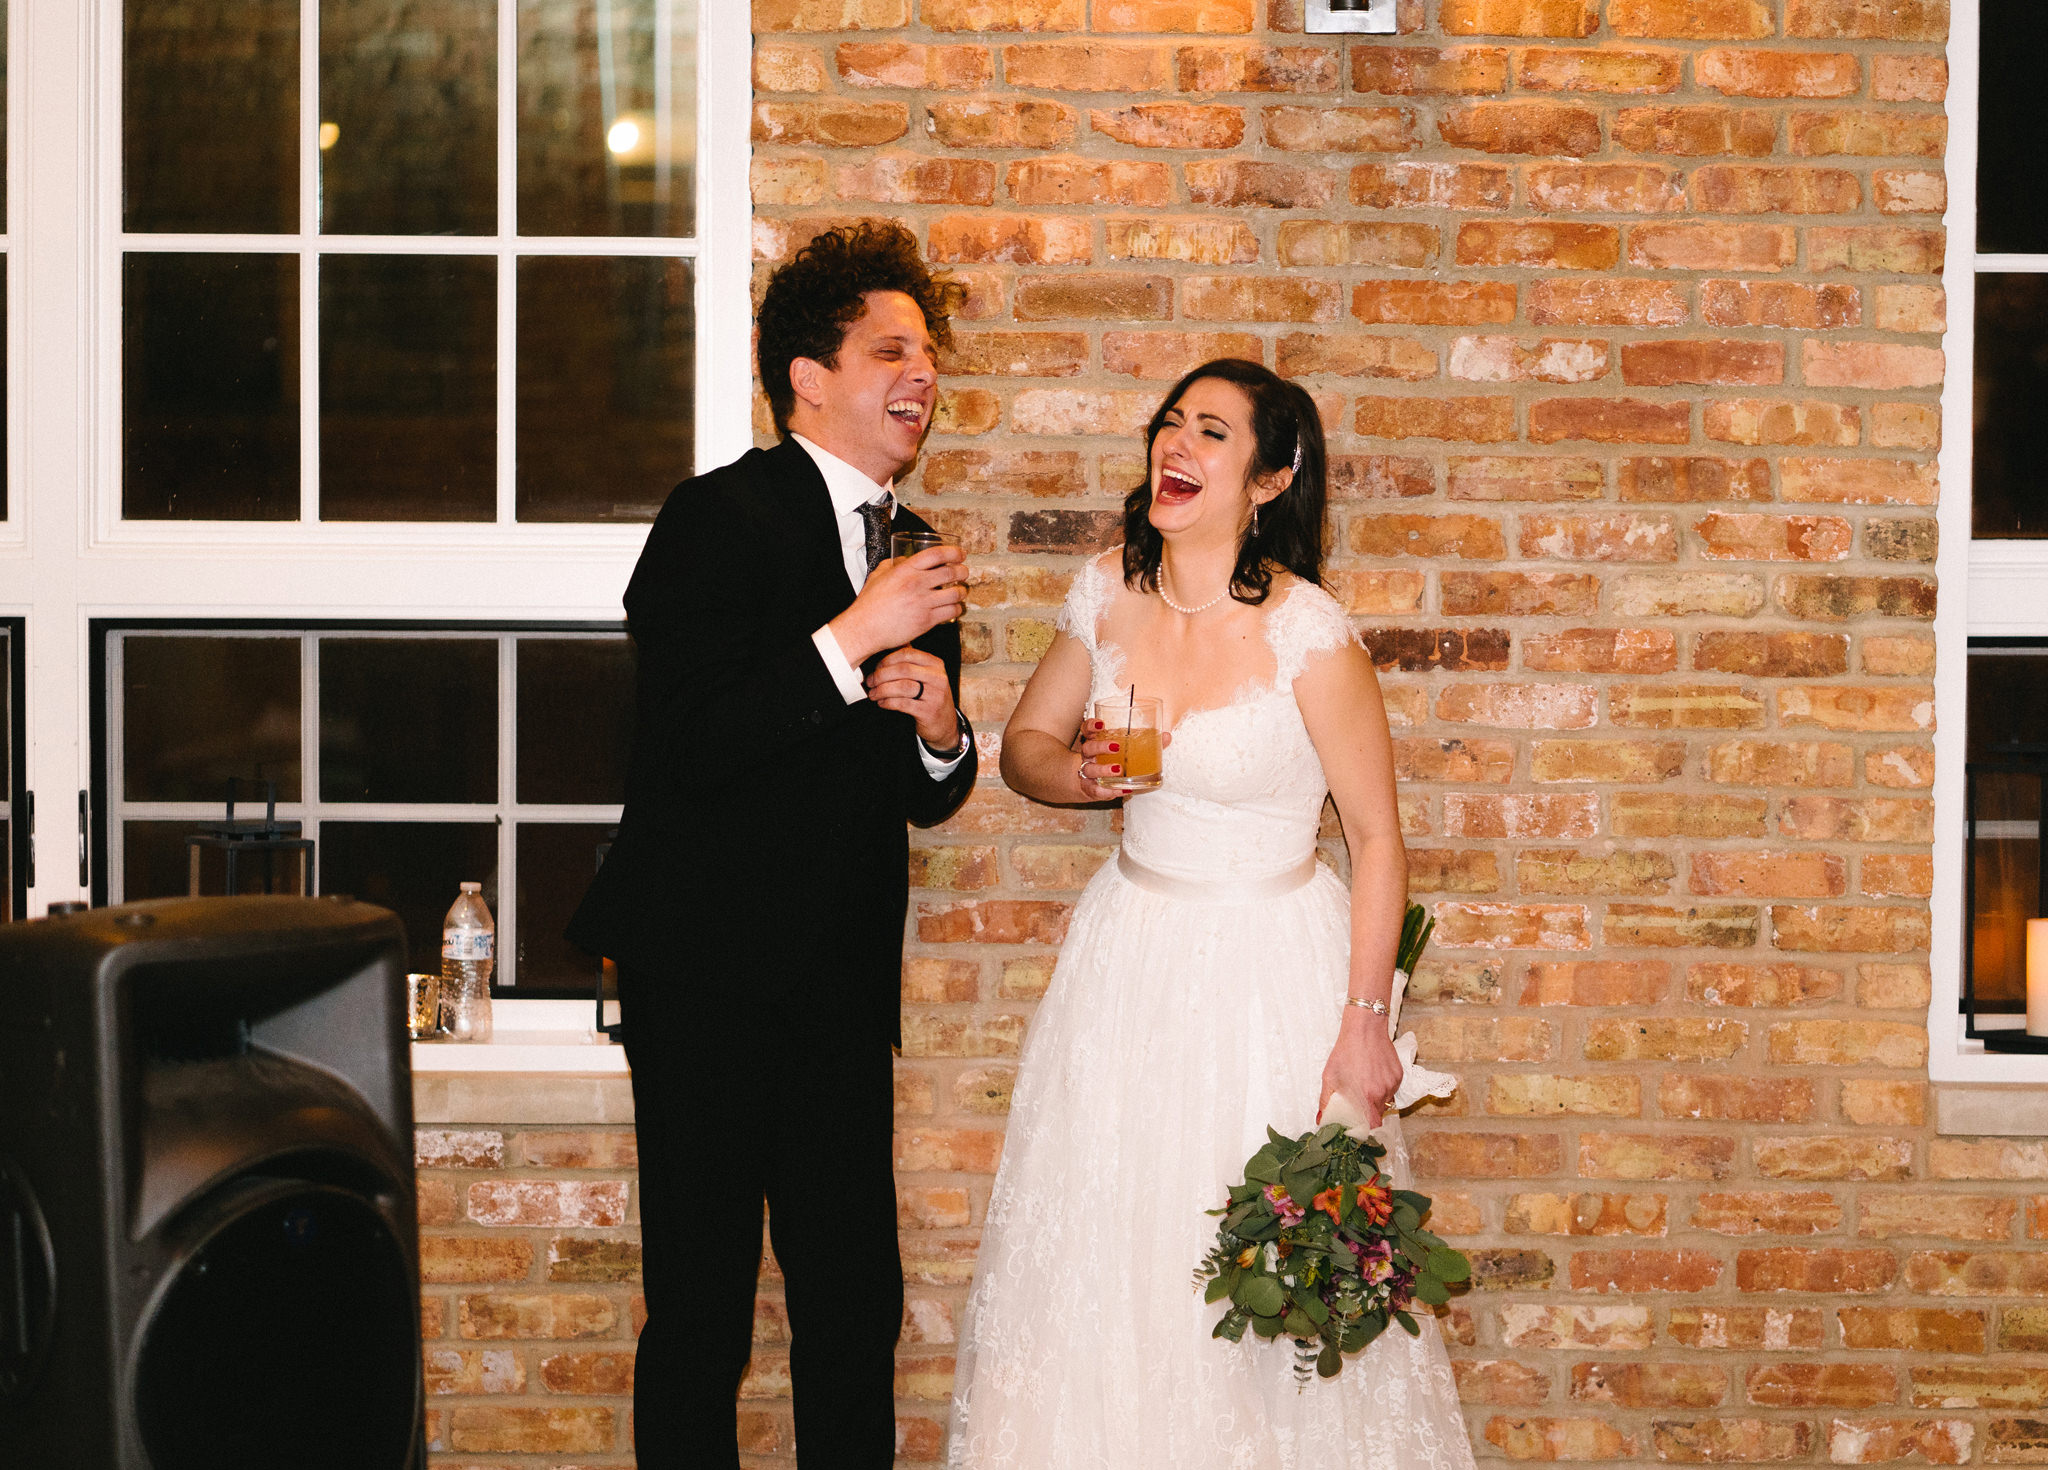 115-rempel-photography-chicago-wedding-inspiration-west-loop-fulton-market-caitlin-max-loft-lucia-venue-lindsey-marino-city-bbq-dana-hotel-and-spa.jpg